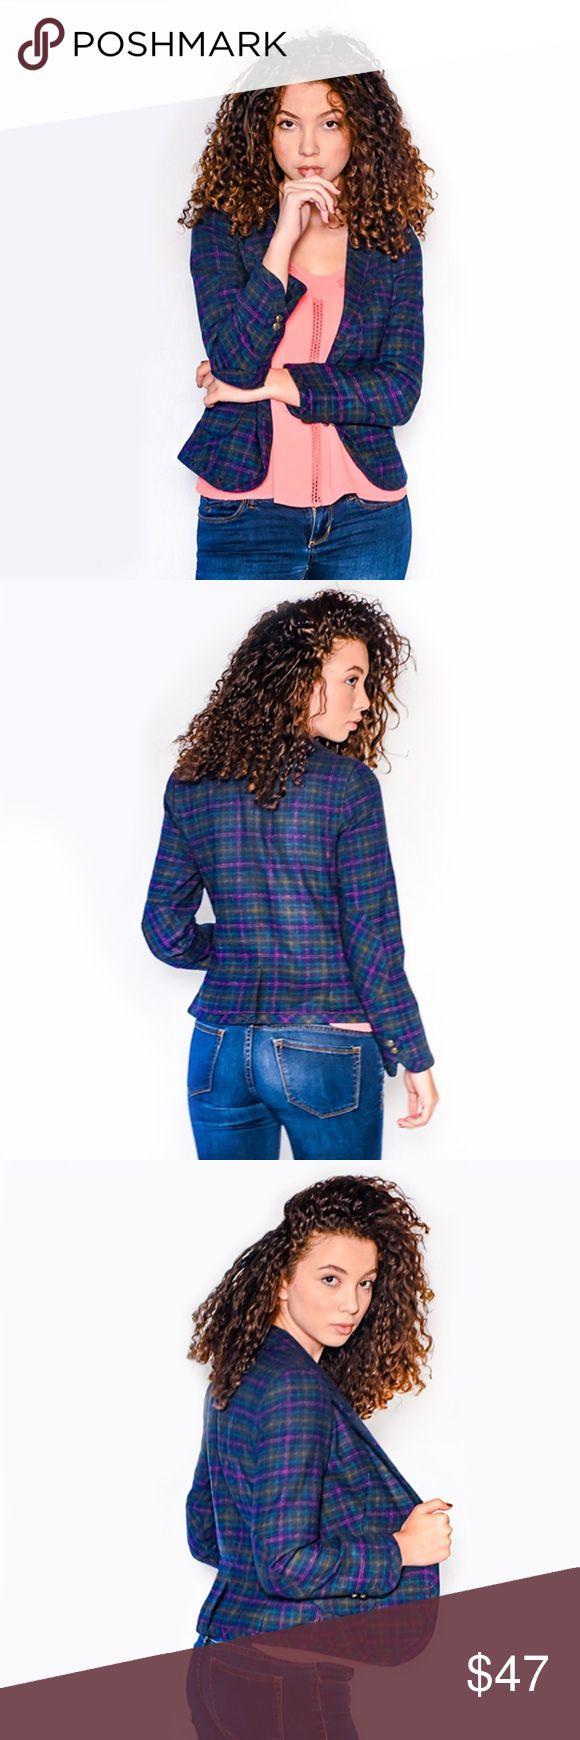 •||NEW||• LONG SLEEVE TARTAN ELBOW-PATCH JACKET Your fabulous style just got chicer with this tartan blazer. Wear day or night as a layering piece for a fabulous look. It features:  Long sleeves Contrast collar One (1) button closure in front Elbow patch accent Two (2) button split style at the cuff Two (2) front open pocket Slit at back Lined 53% Polyester,  32% Acrylic, 6% Cotton, 5% Viscose, 2% Wool, 2% Polyamide Please note: Review size chart for an accurate fit of the style/brand…